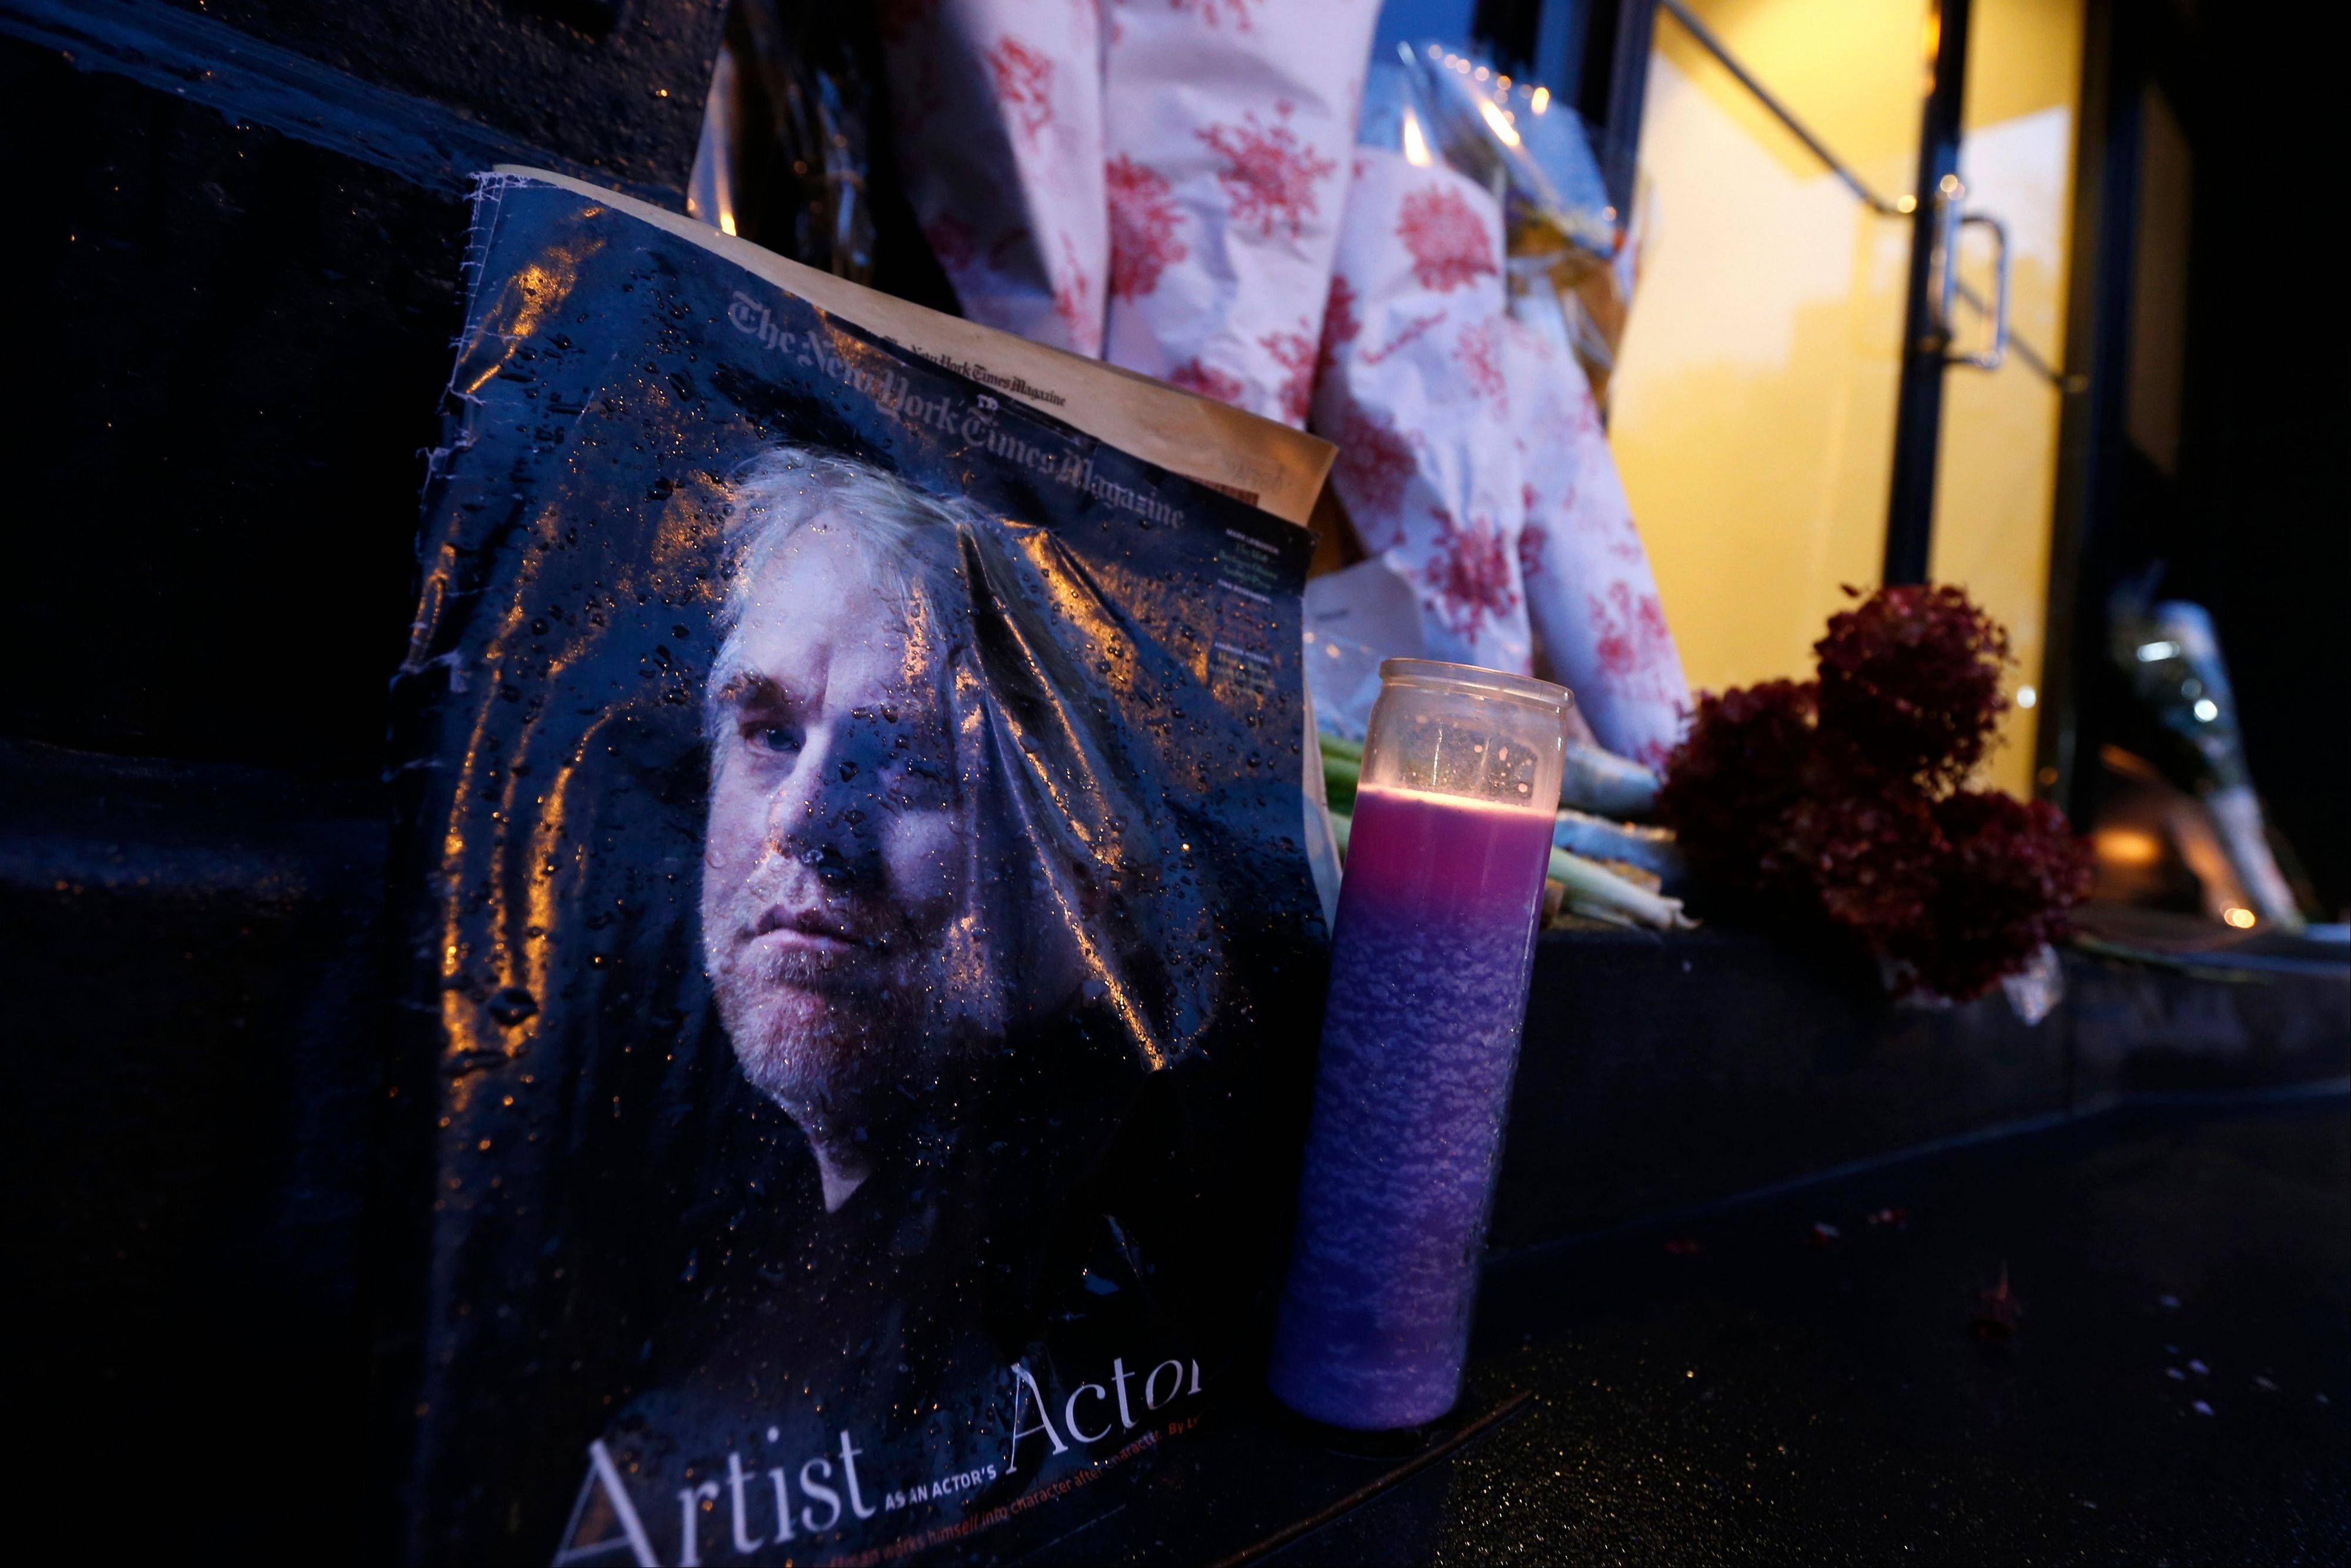 A makeshift memorial sits outside the home of actor Philip Seymour Hoffman, Monday, Feb. 3, 2014, in New York. Hoffman, 46, was found dead Sunday in his apartment of a suspected drug overdose.